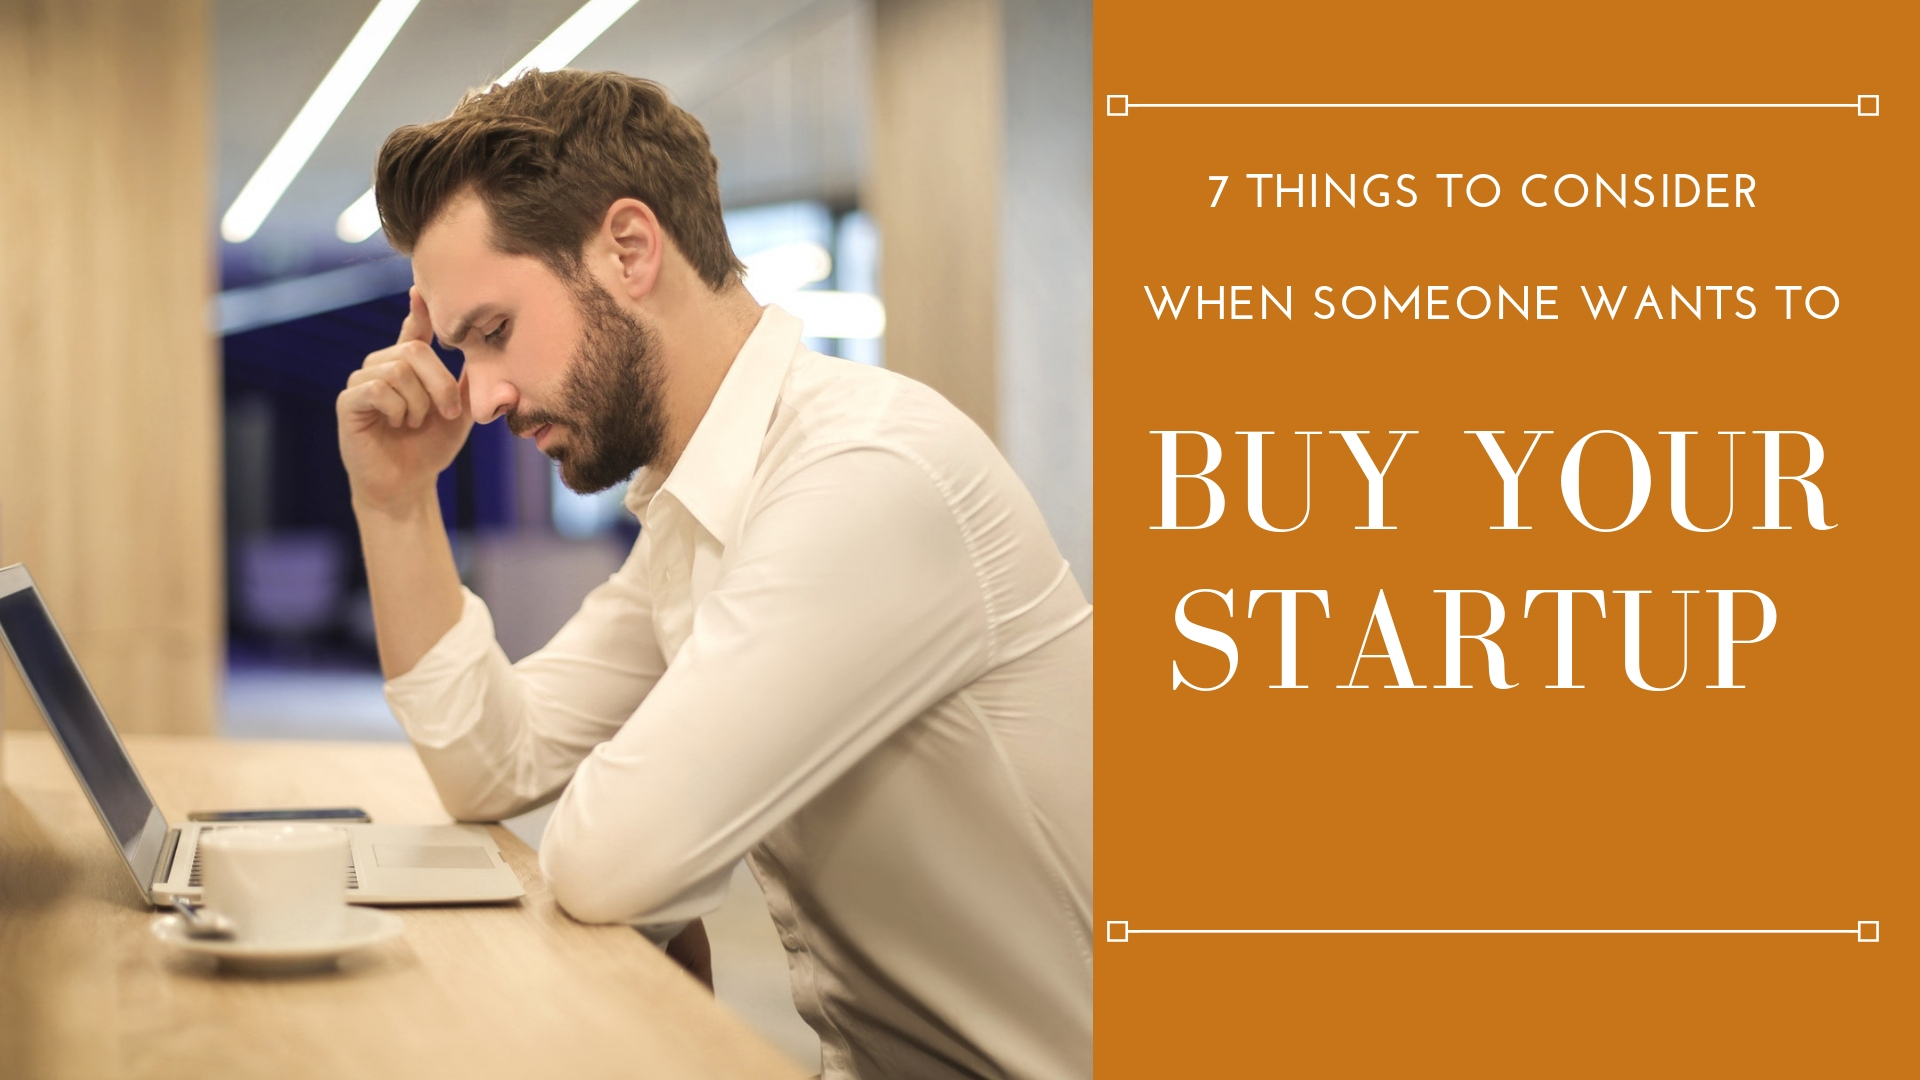 7 Things to Consider When Someone Wants to Buy Your Startup